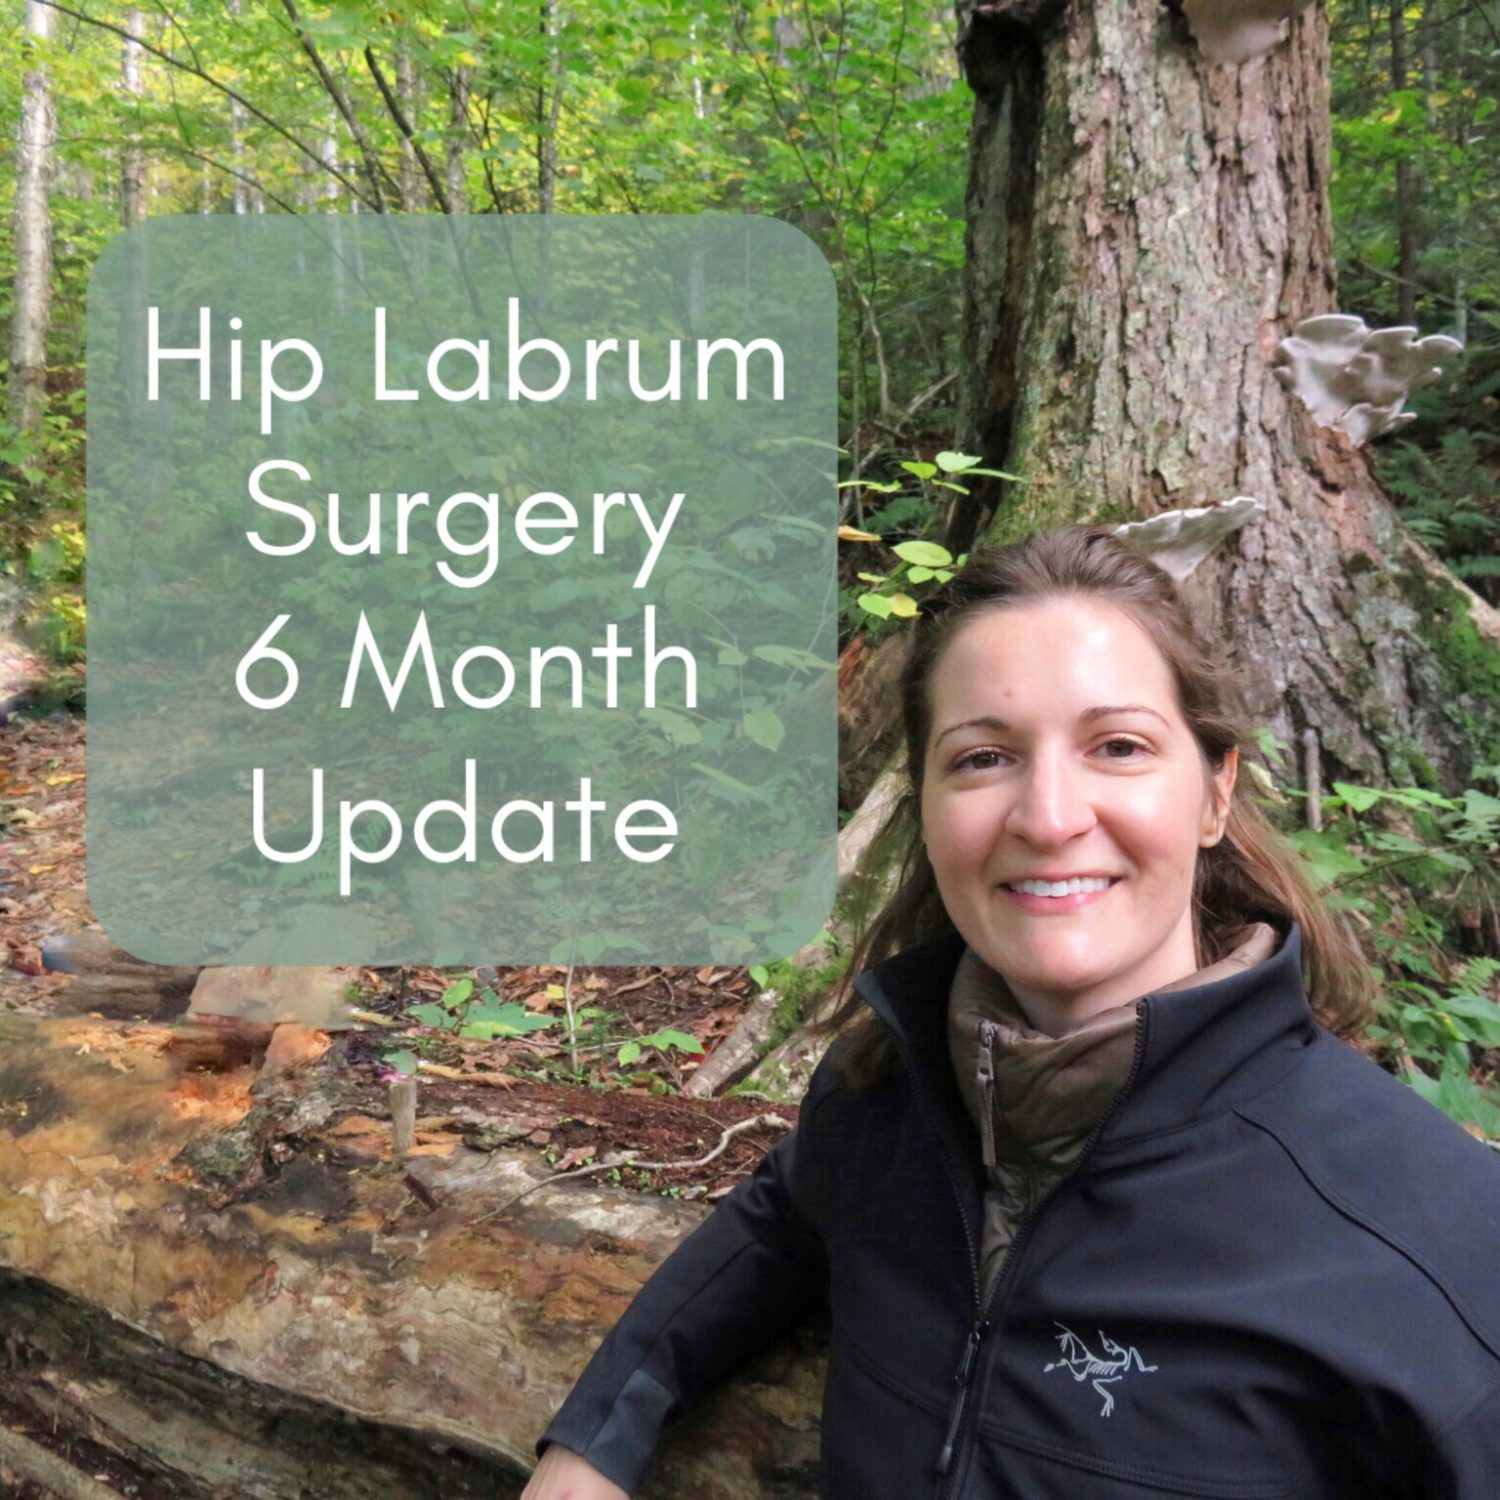 Hip Labrum Surgery: 6 Month Update After Labral Repair